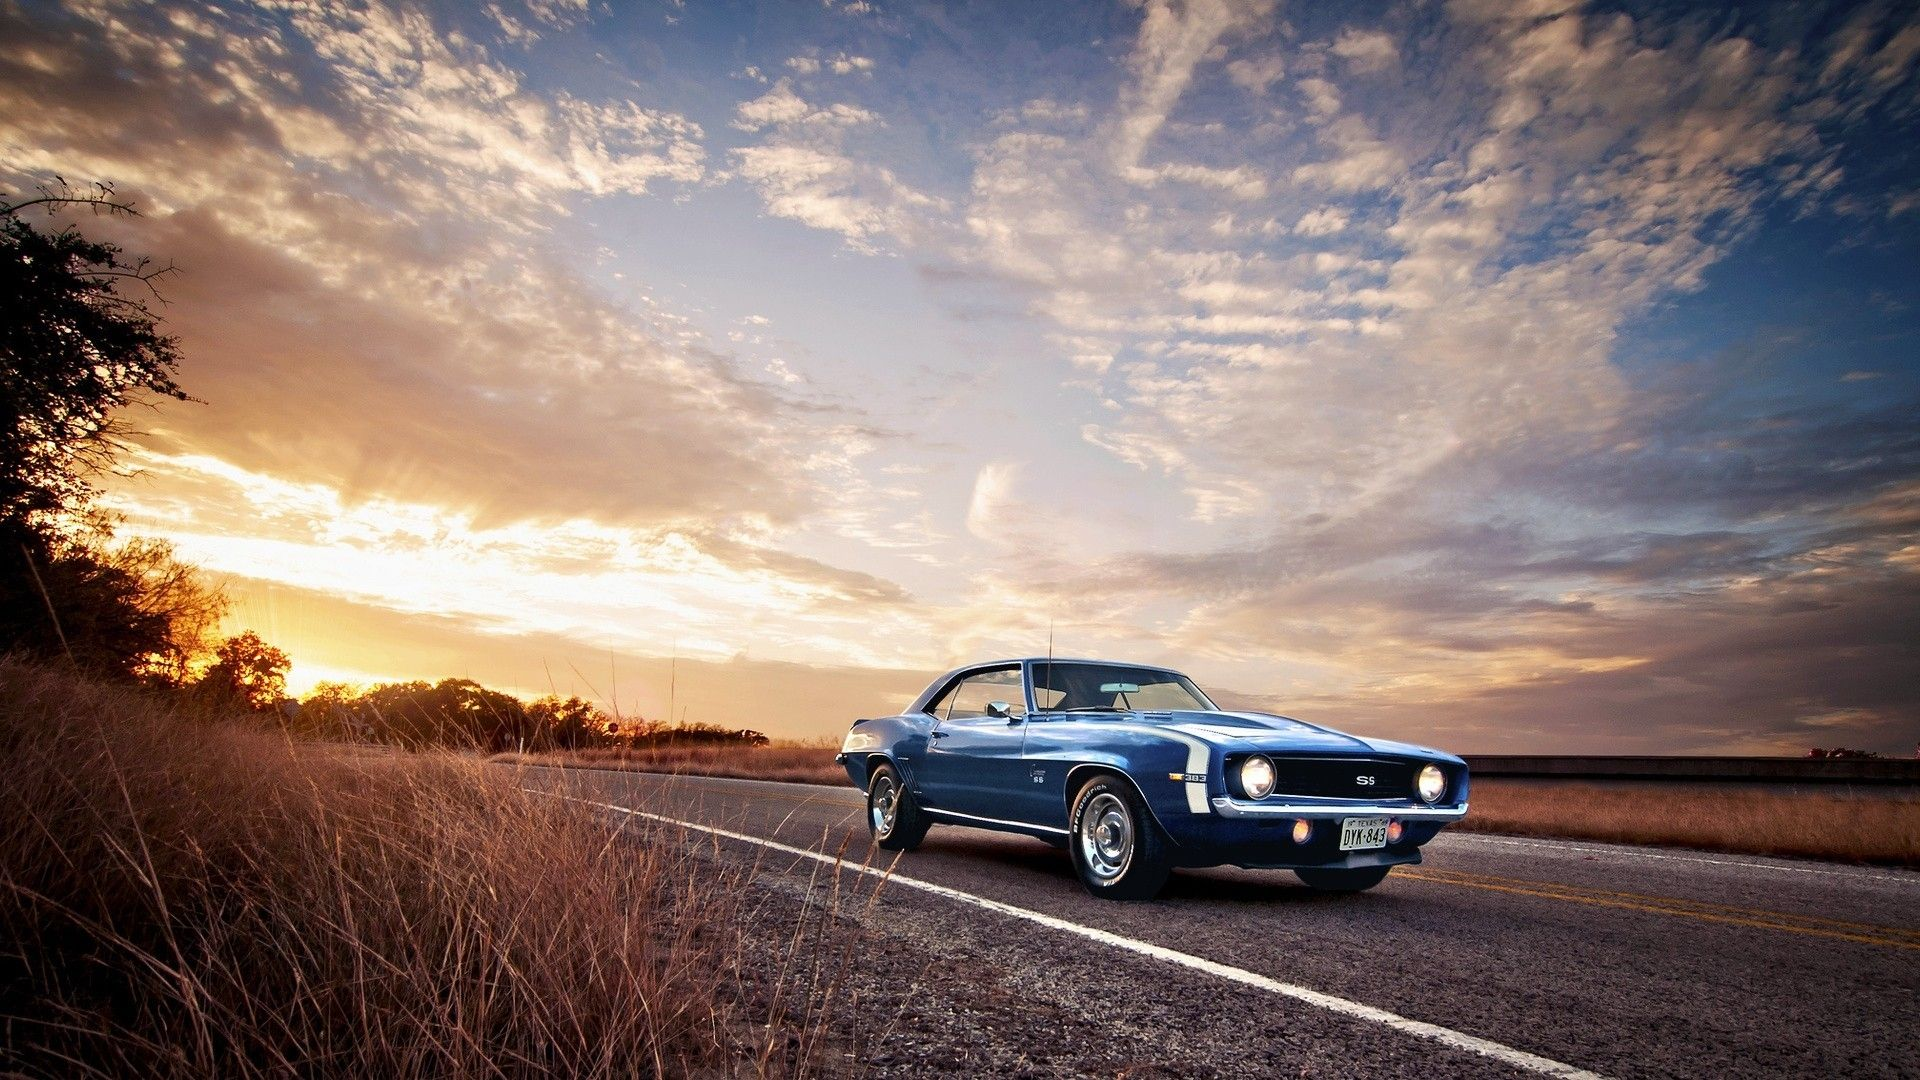 Classic Car Wallpapers Mobile For Desktop Wallpaper X Px